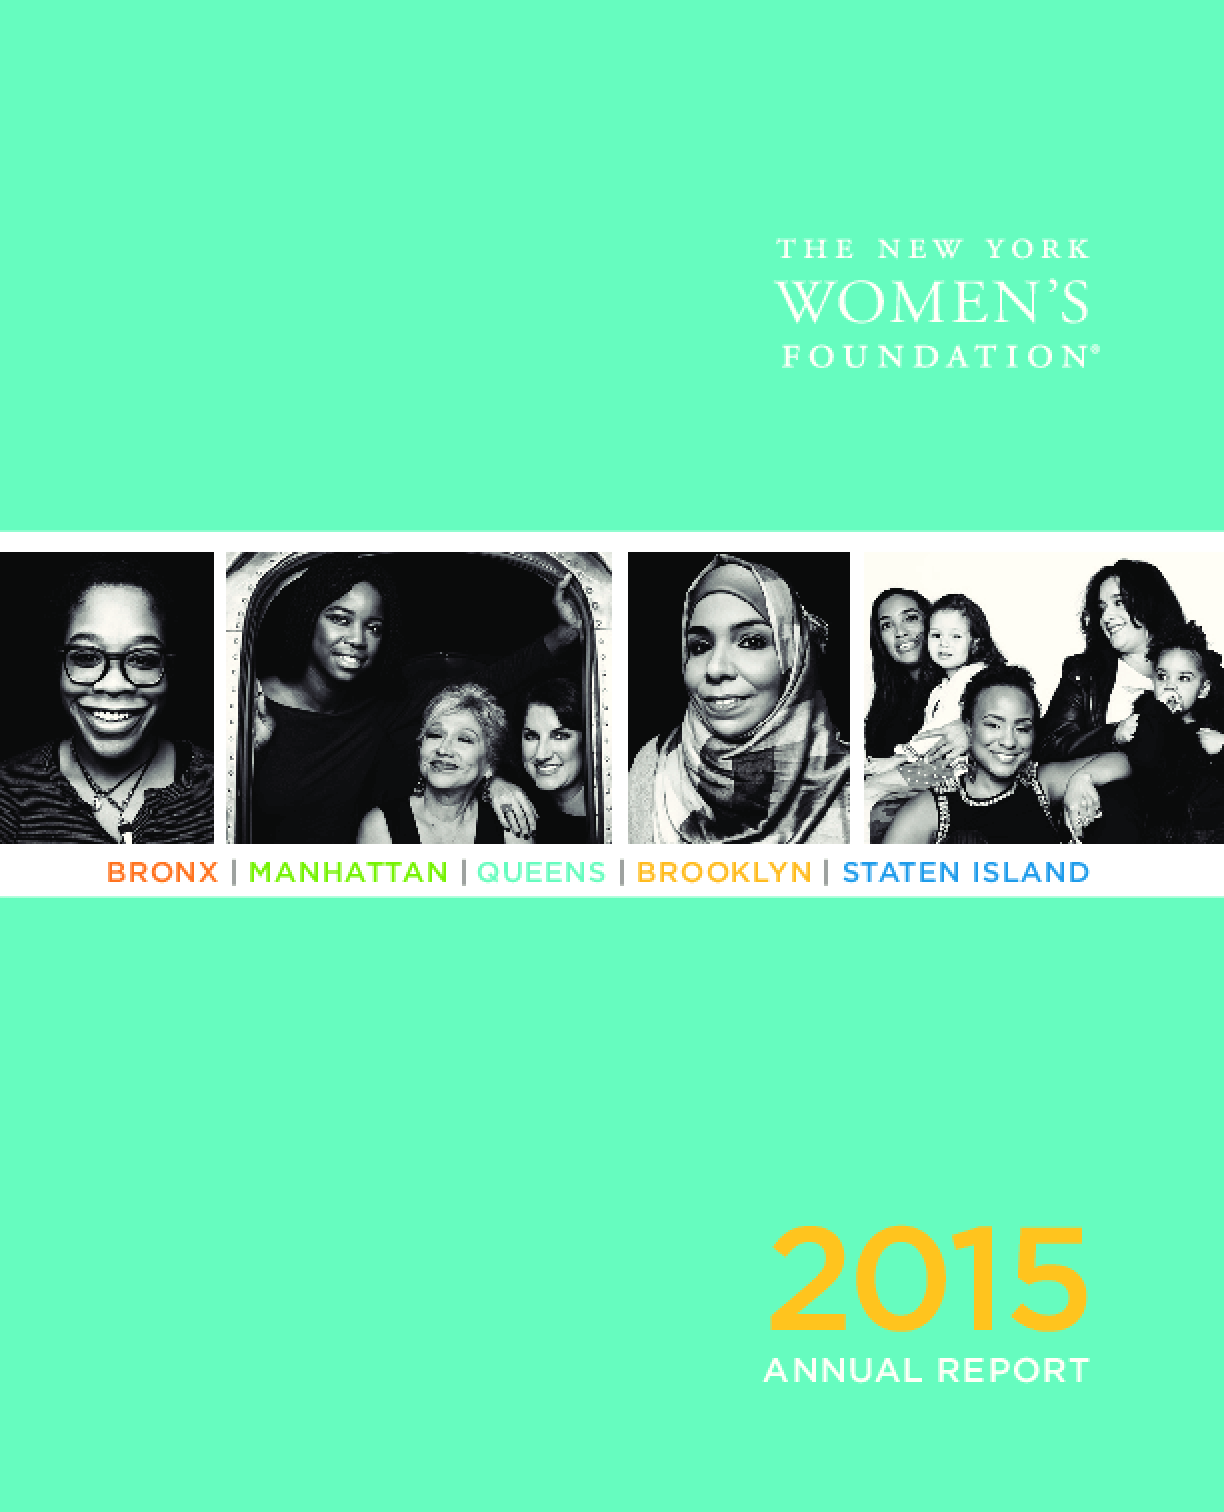 New York Women's Foundation, 2015 Annual Report